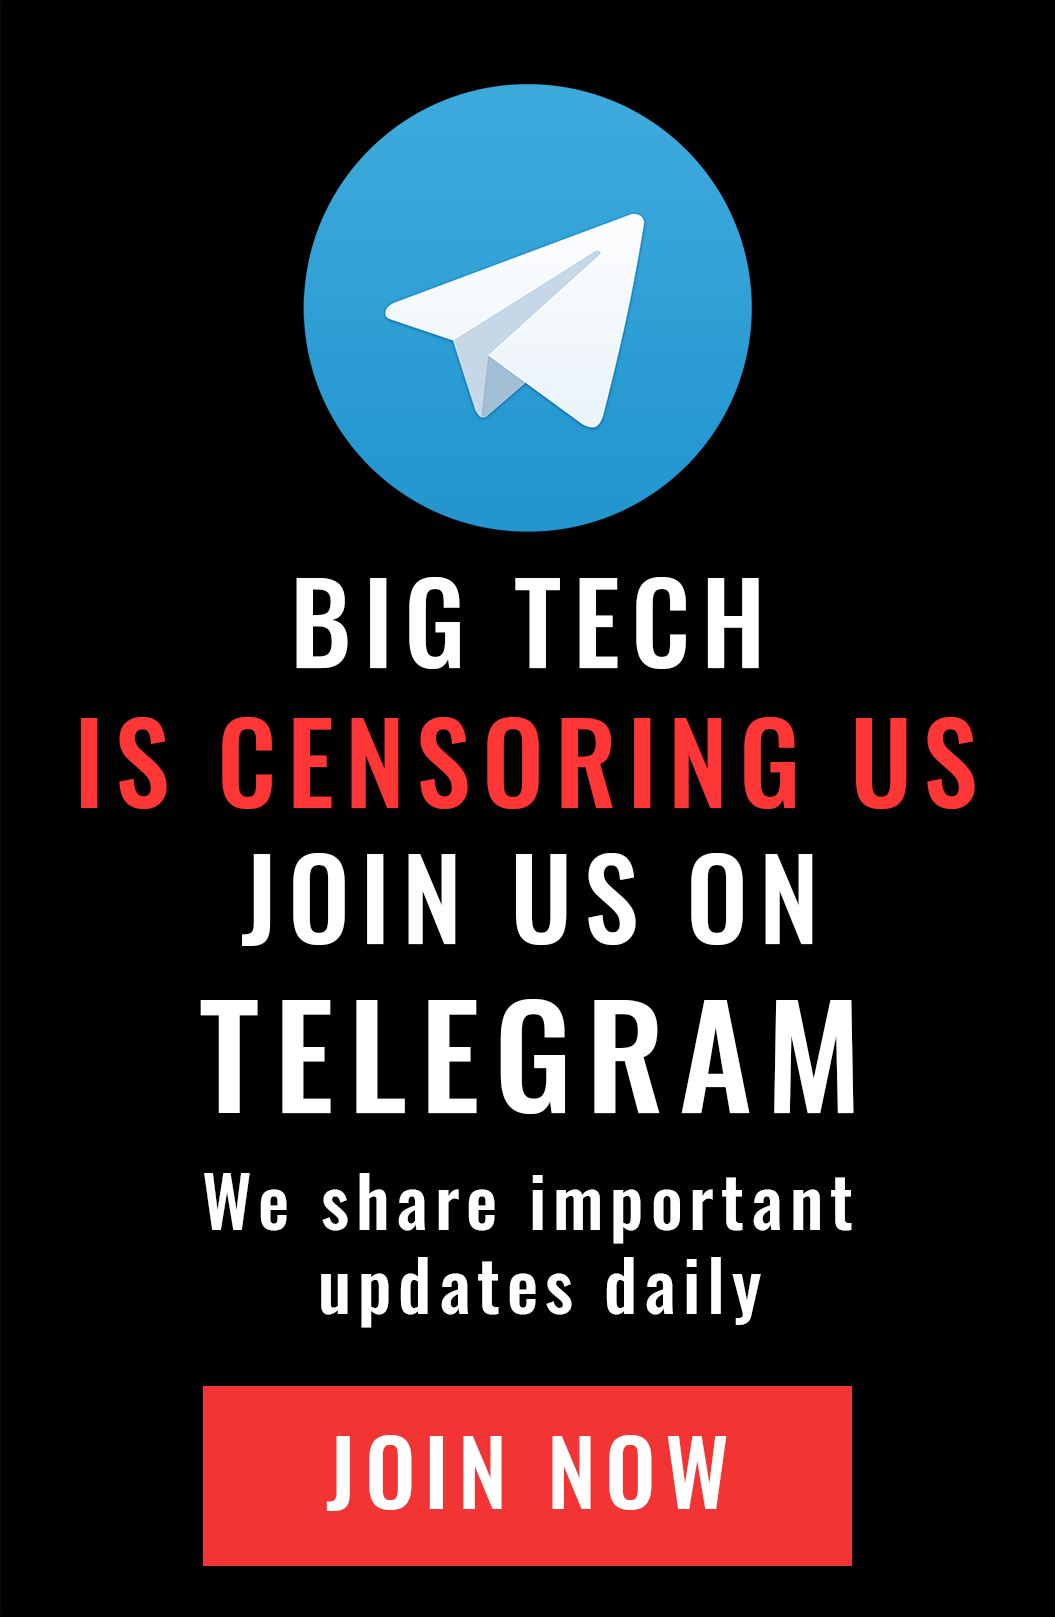 Big Tech is censoring us - join us on telegram